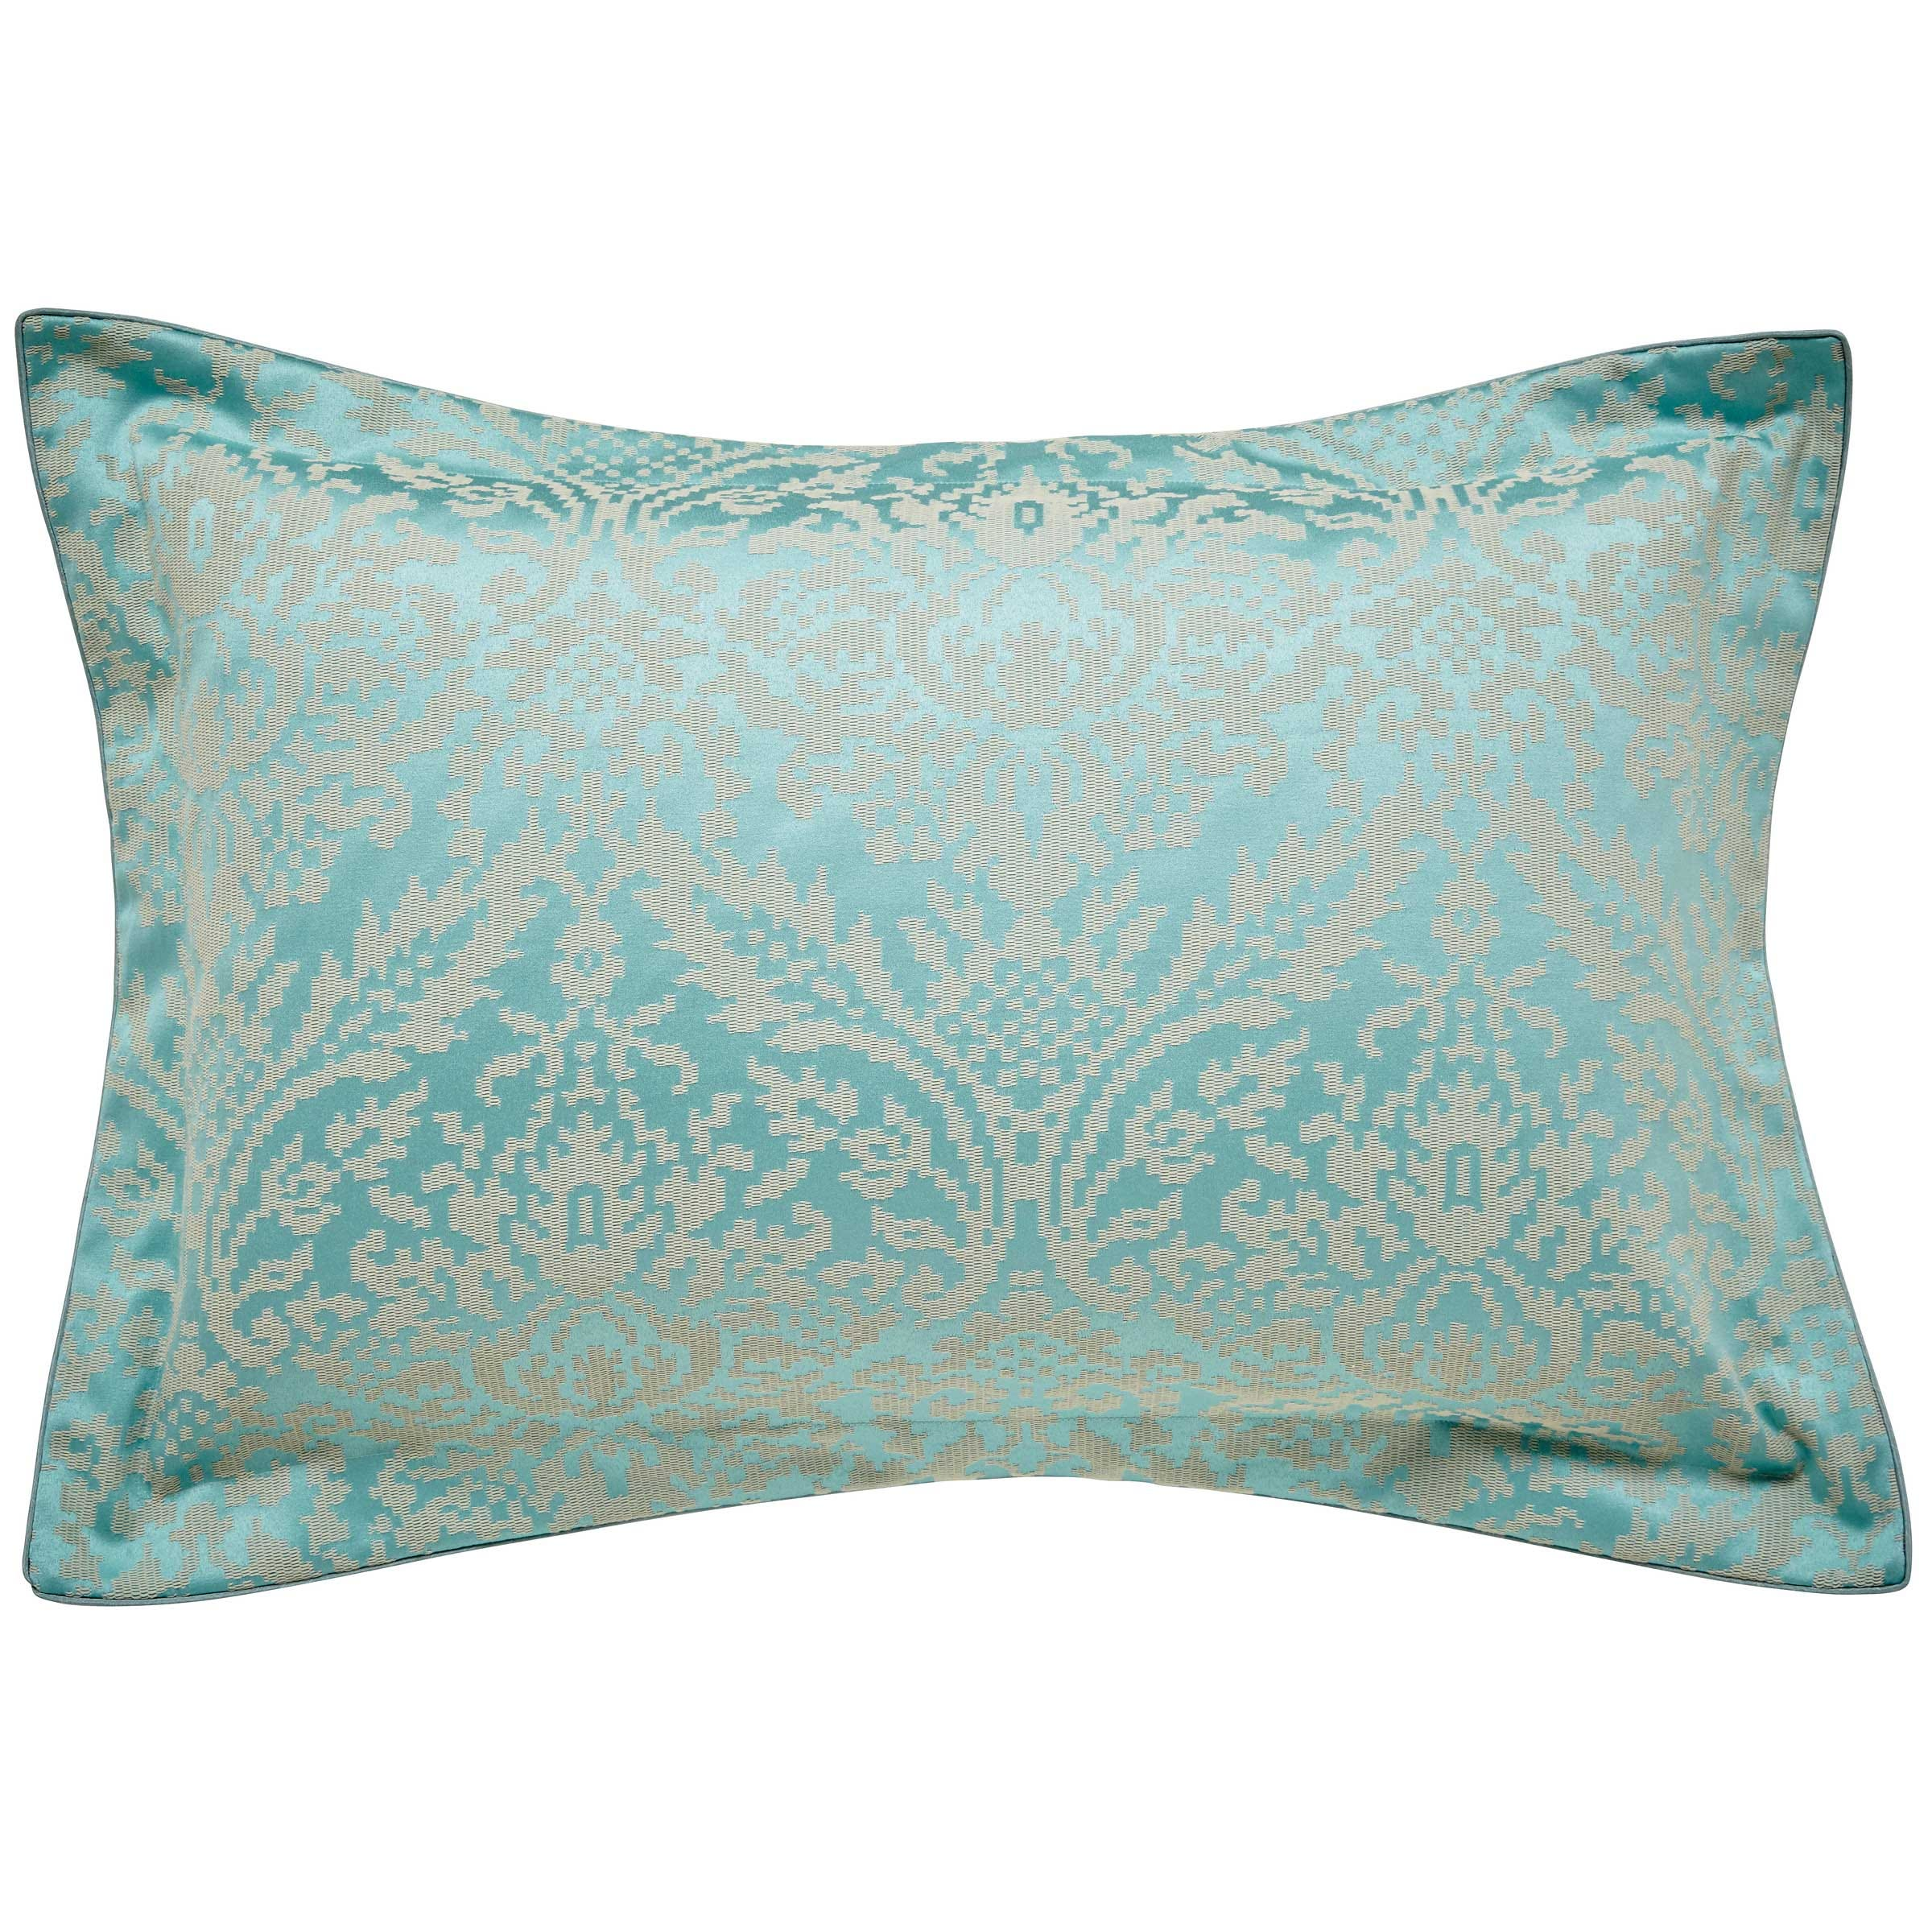 Bedeck 1951 Bedding, Loya Oxford Pillowcase (Mint)